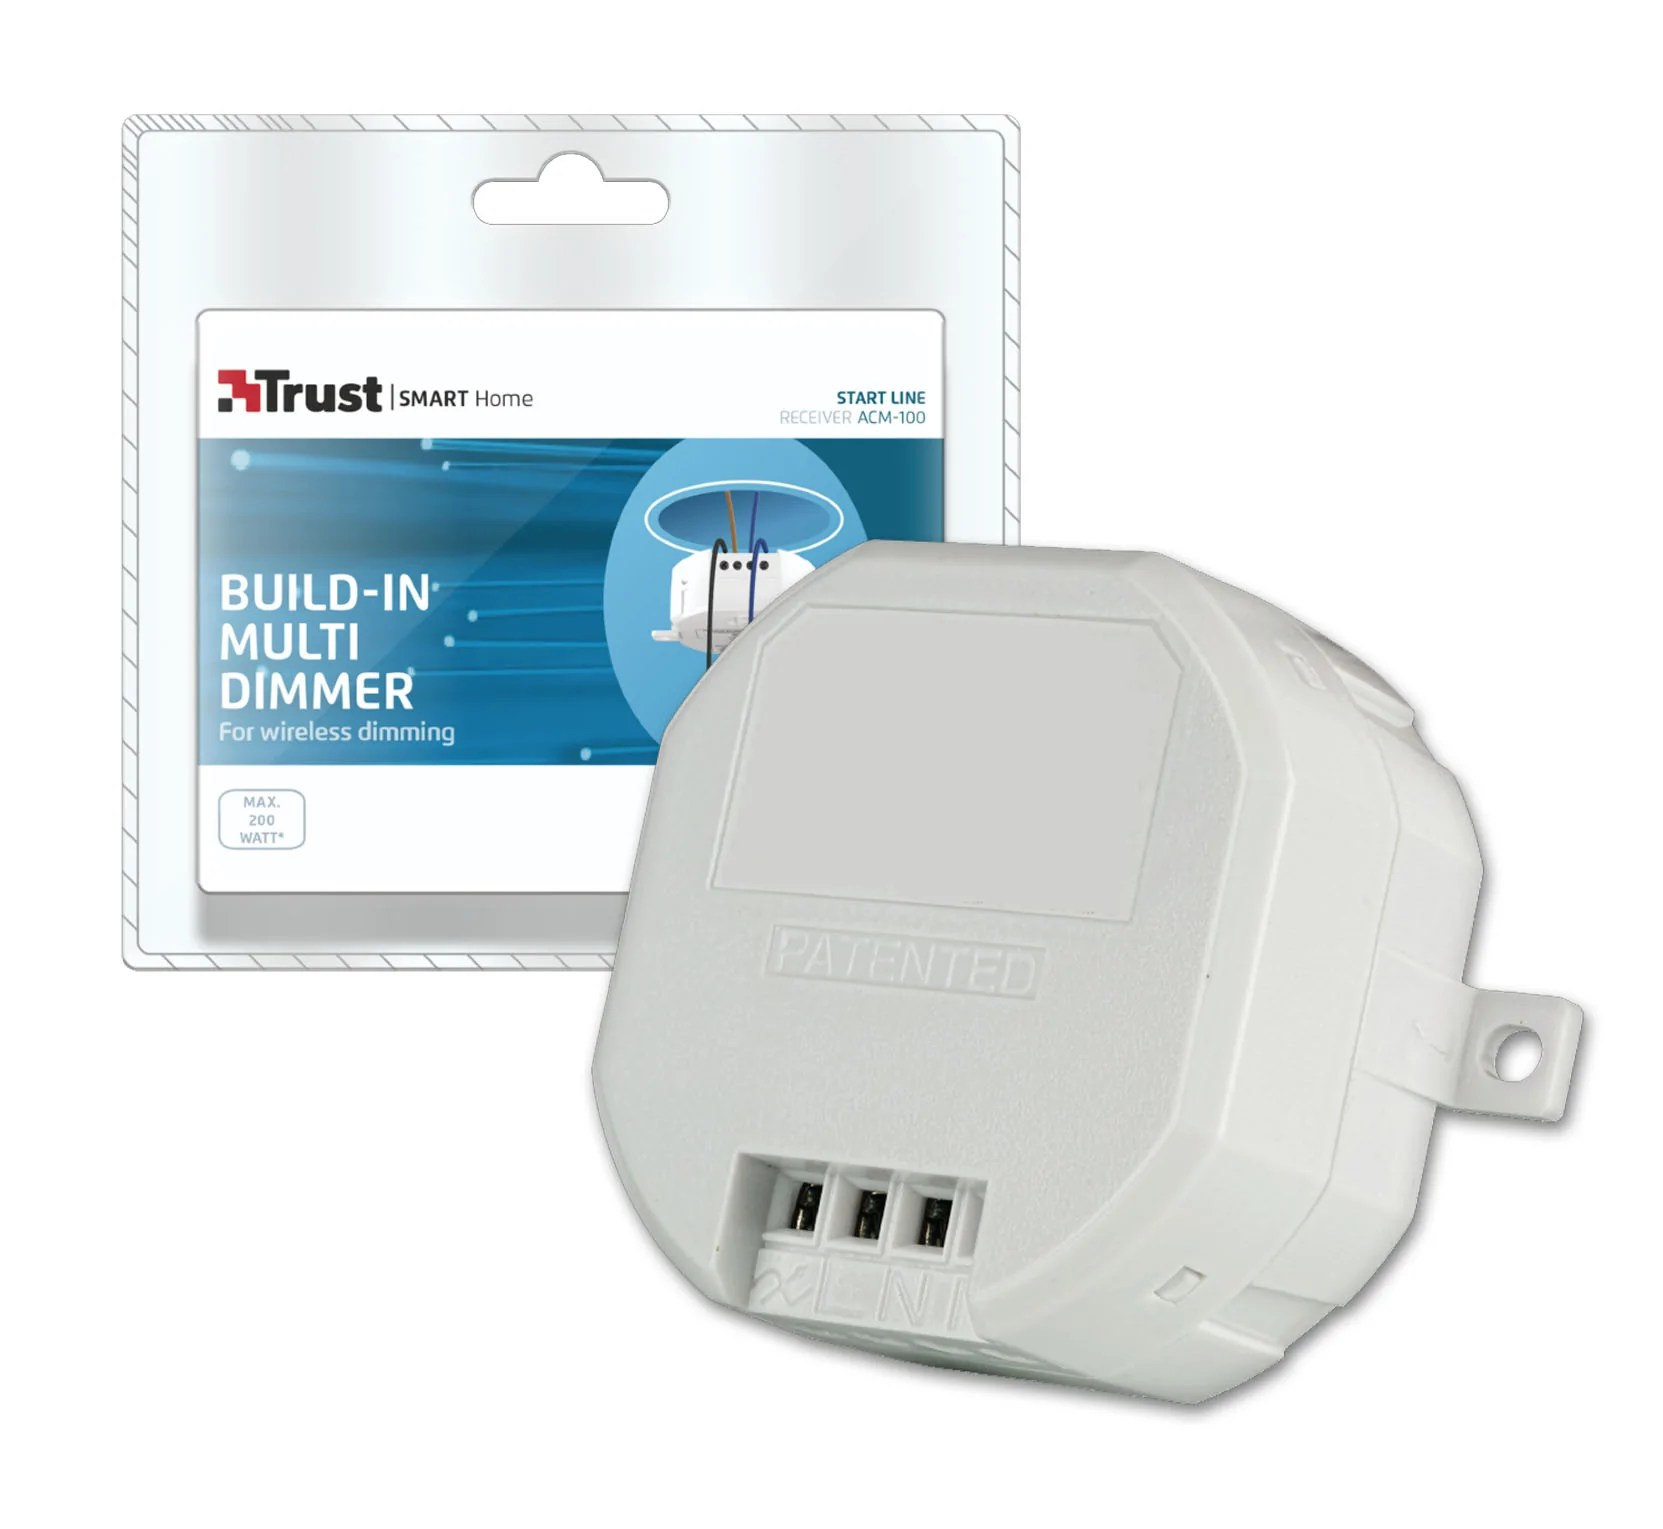 Smart Home Dimmer Build In Multi Dimmer Acm 100 Trust Smart Home